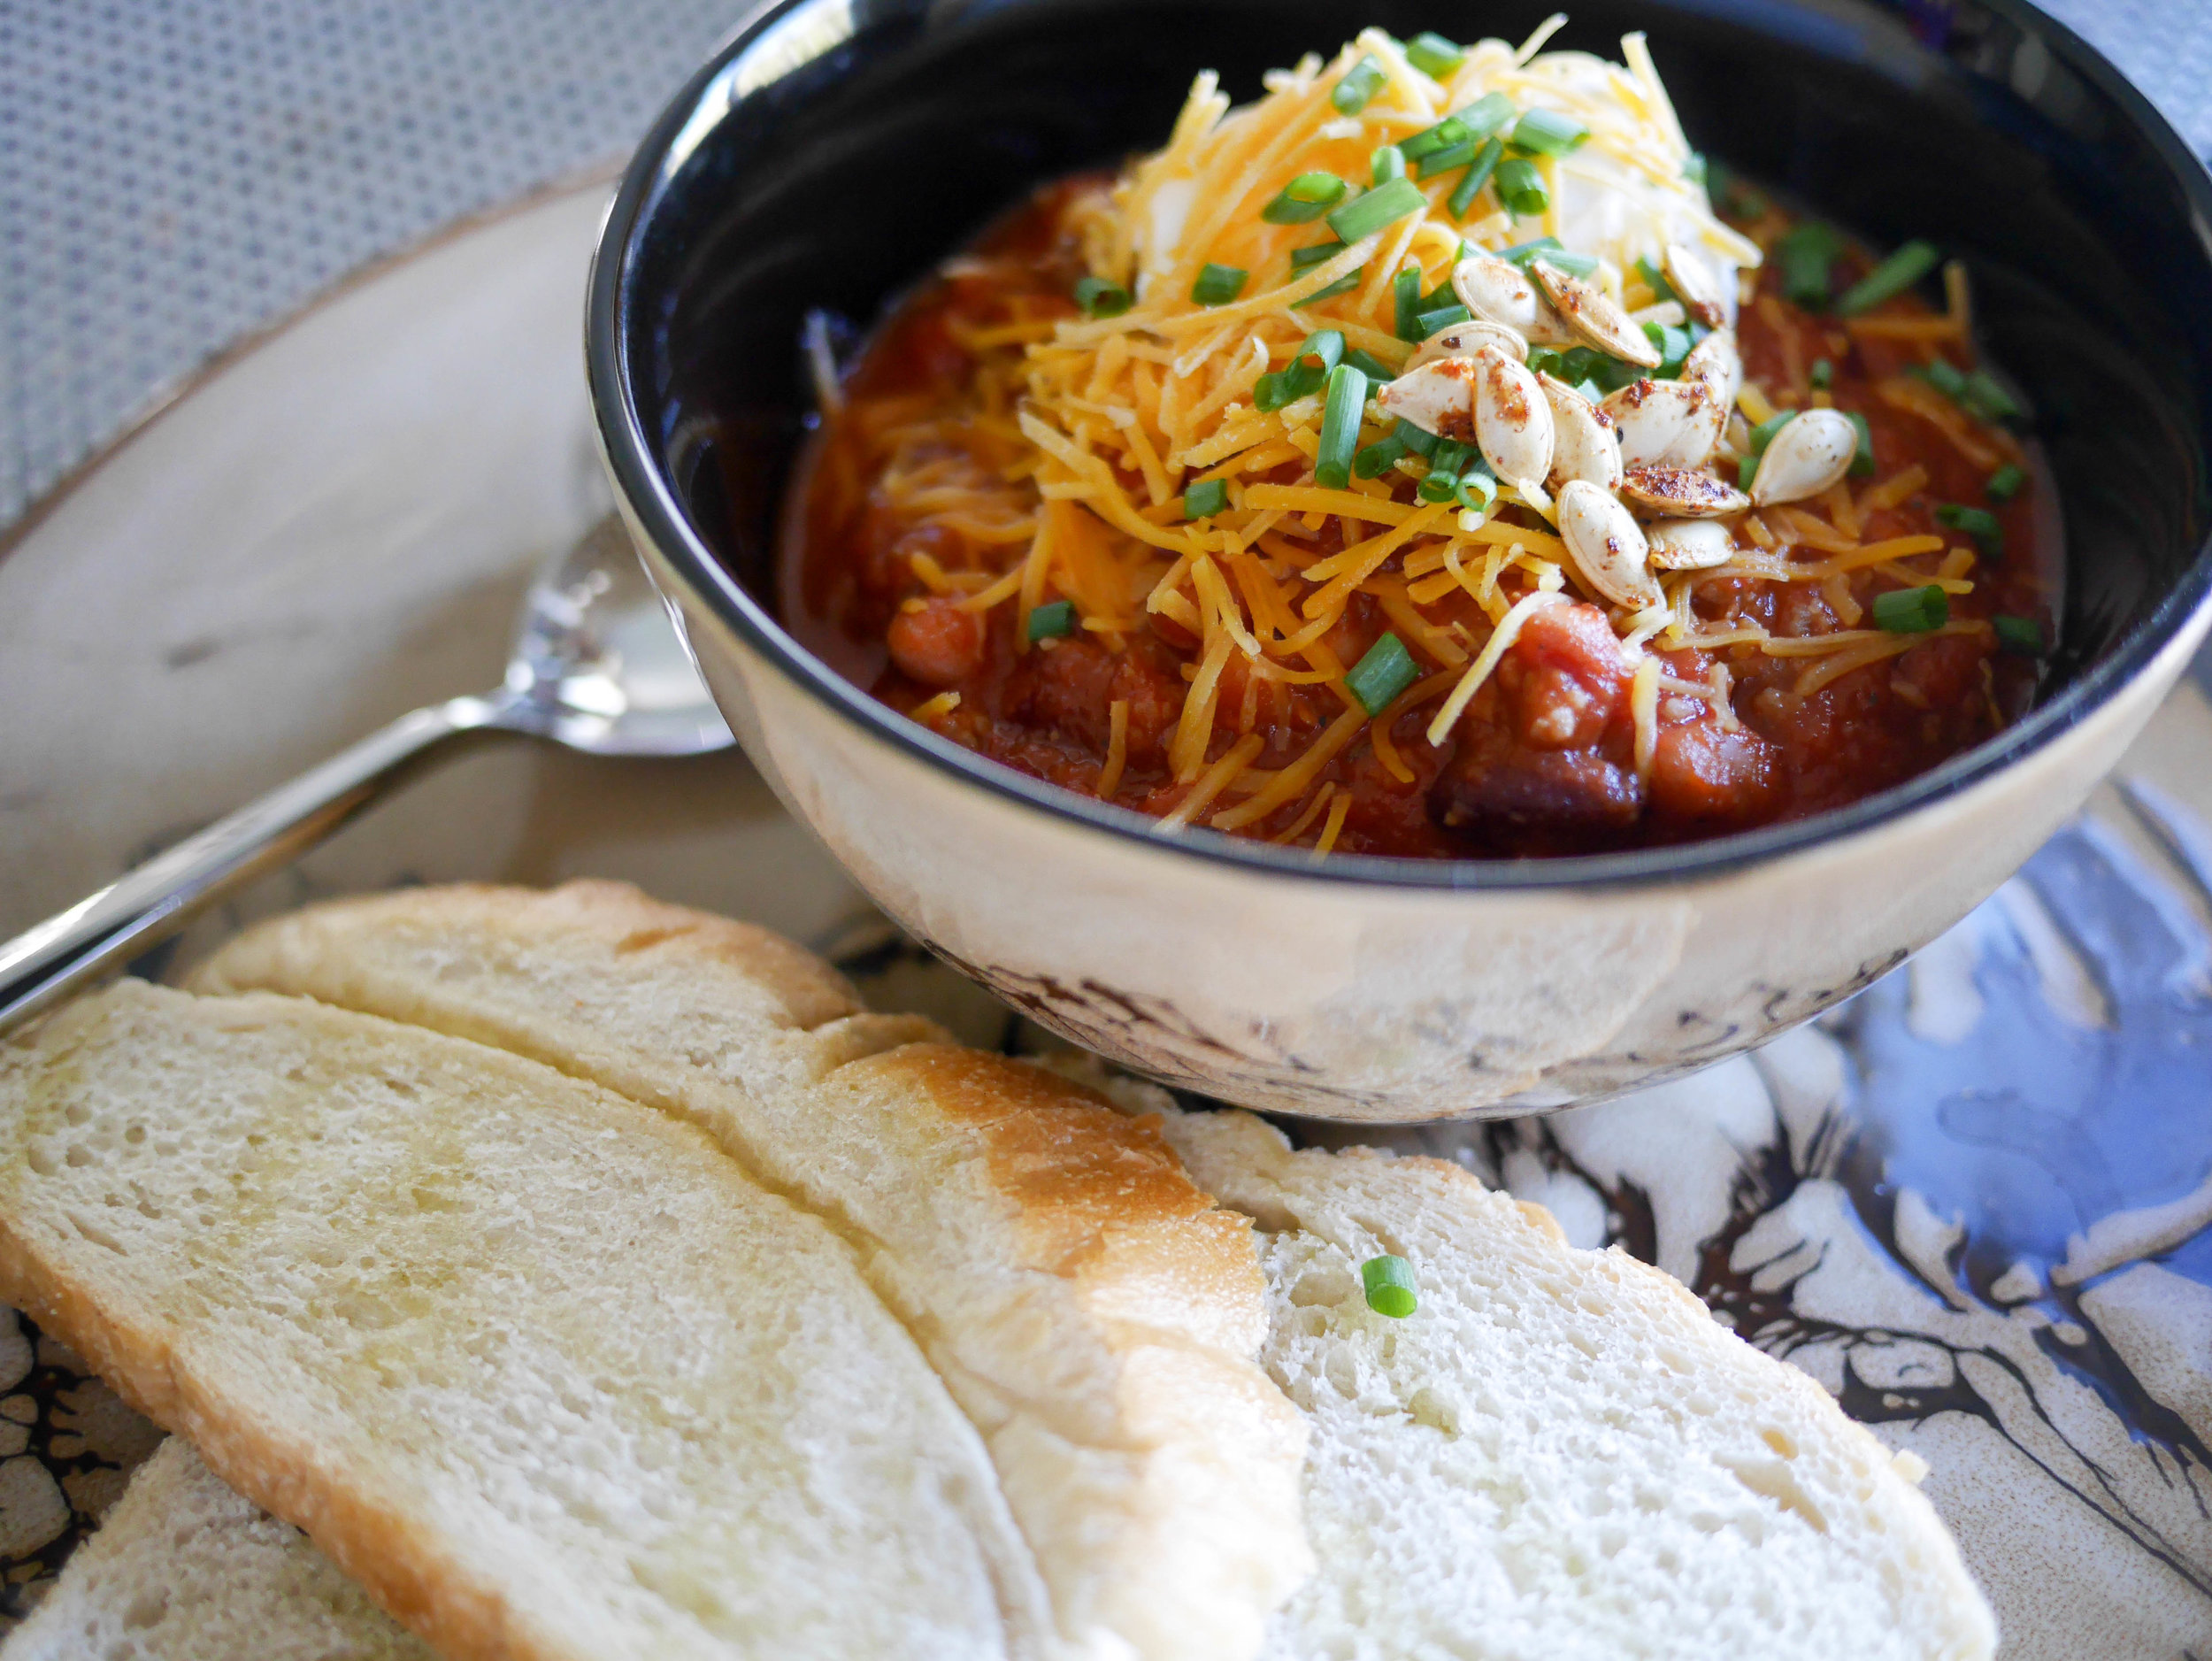 Make a large batch of this classic chili to enjoy leftovers throughout the week. Savor a warm home-cooked meal with none of the work.